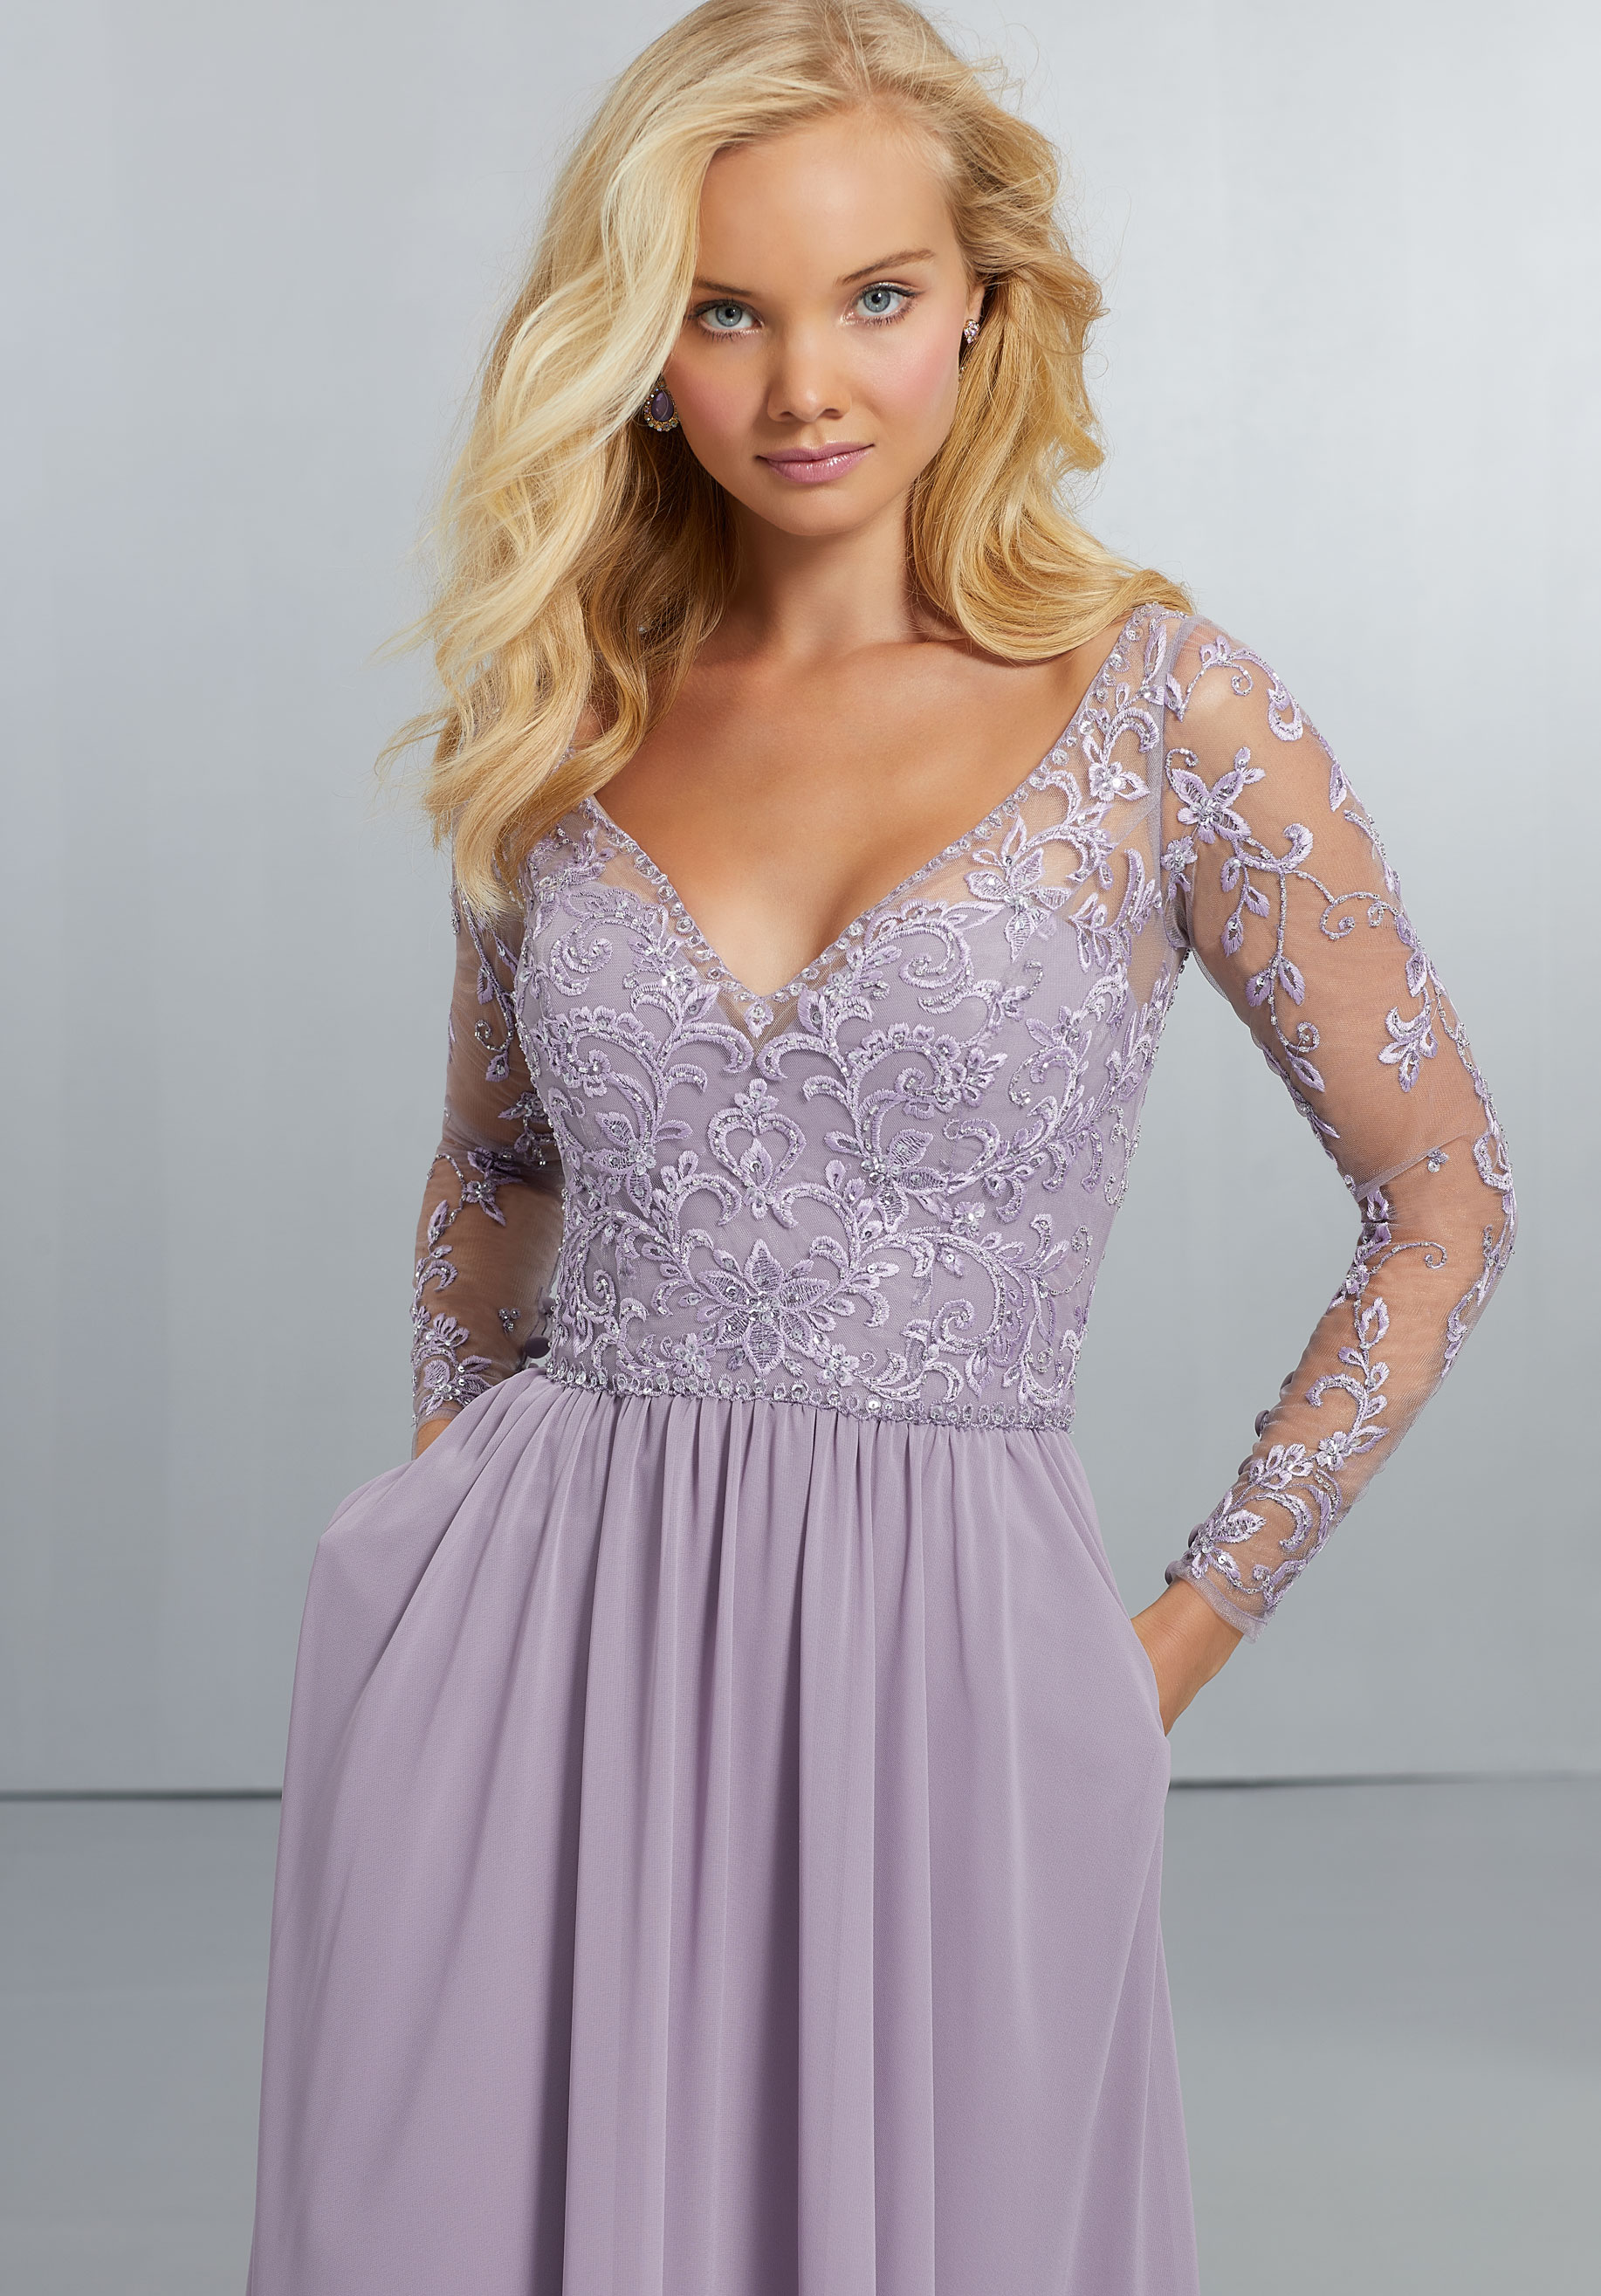 plus size evening dresses with sleeves photo - 1